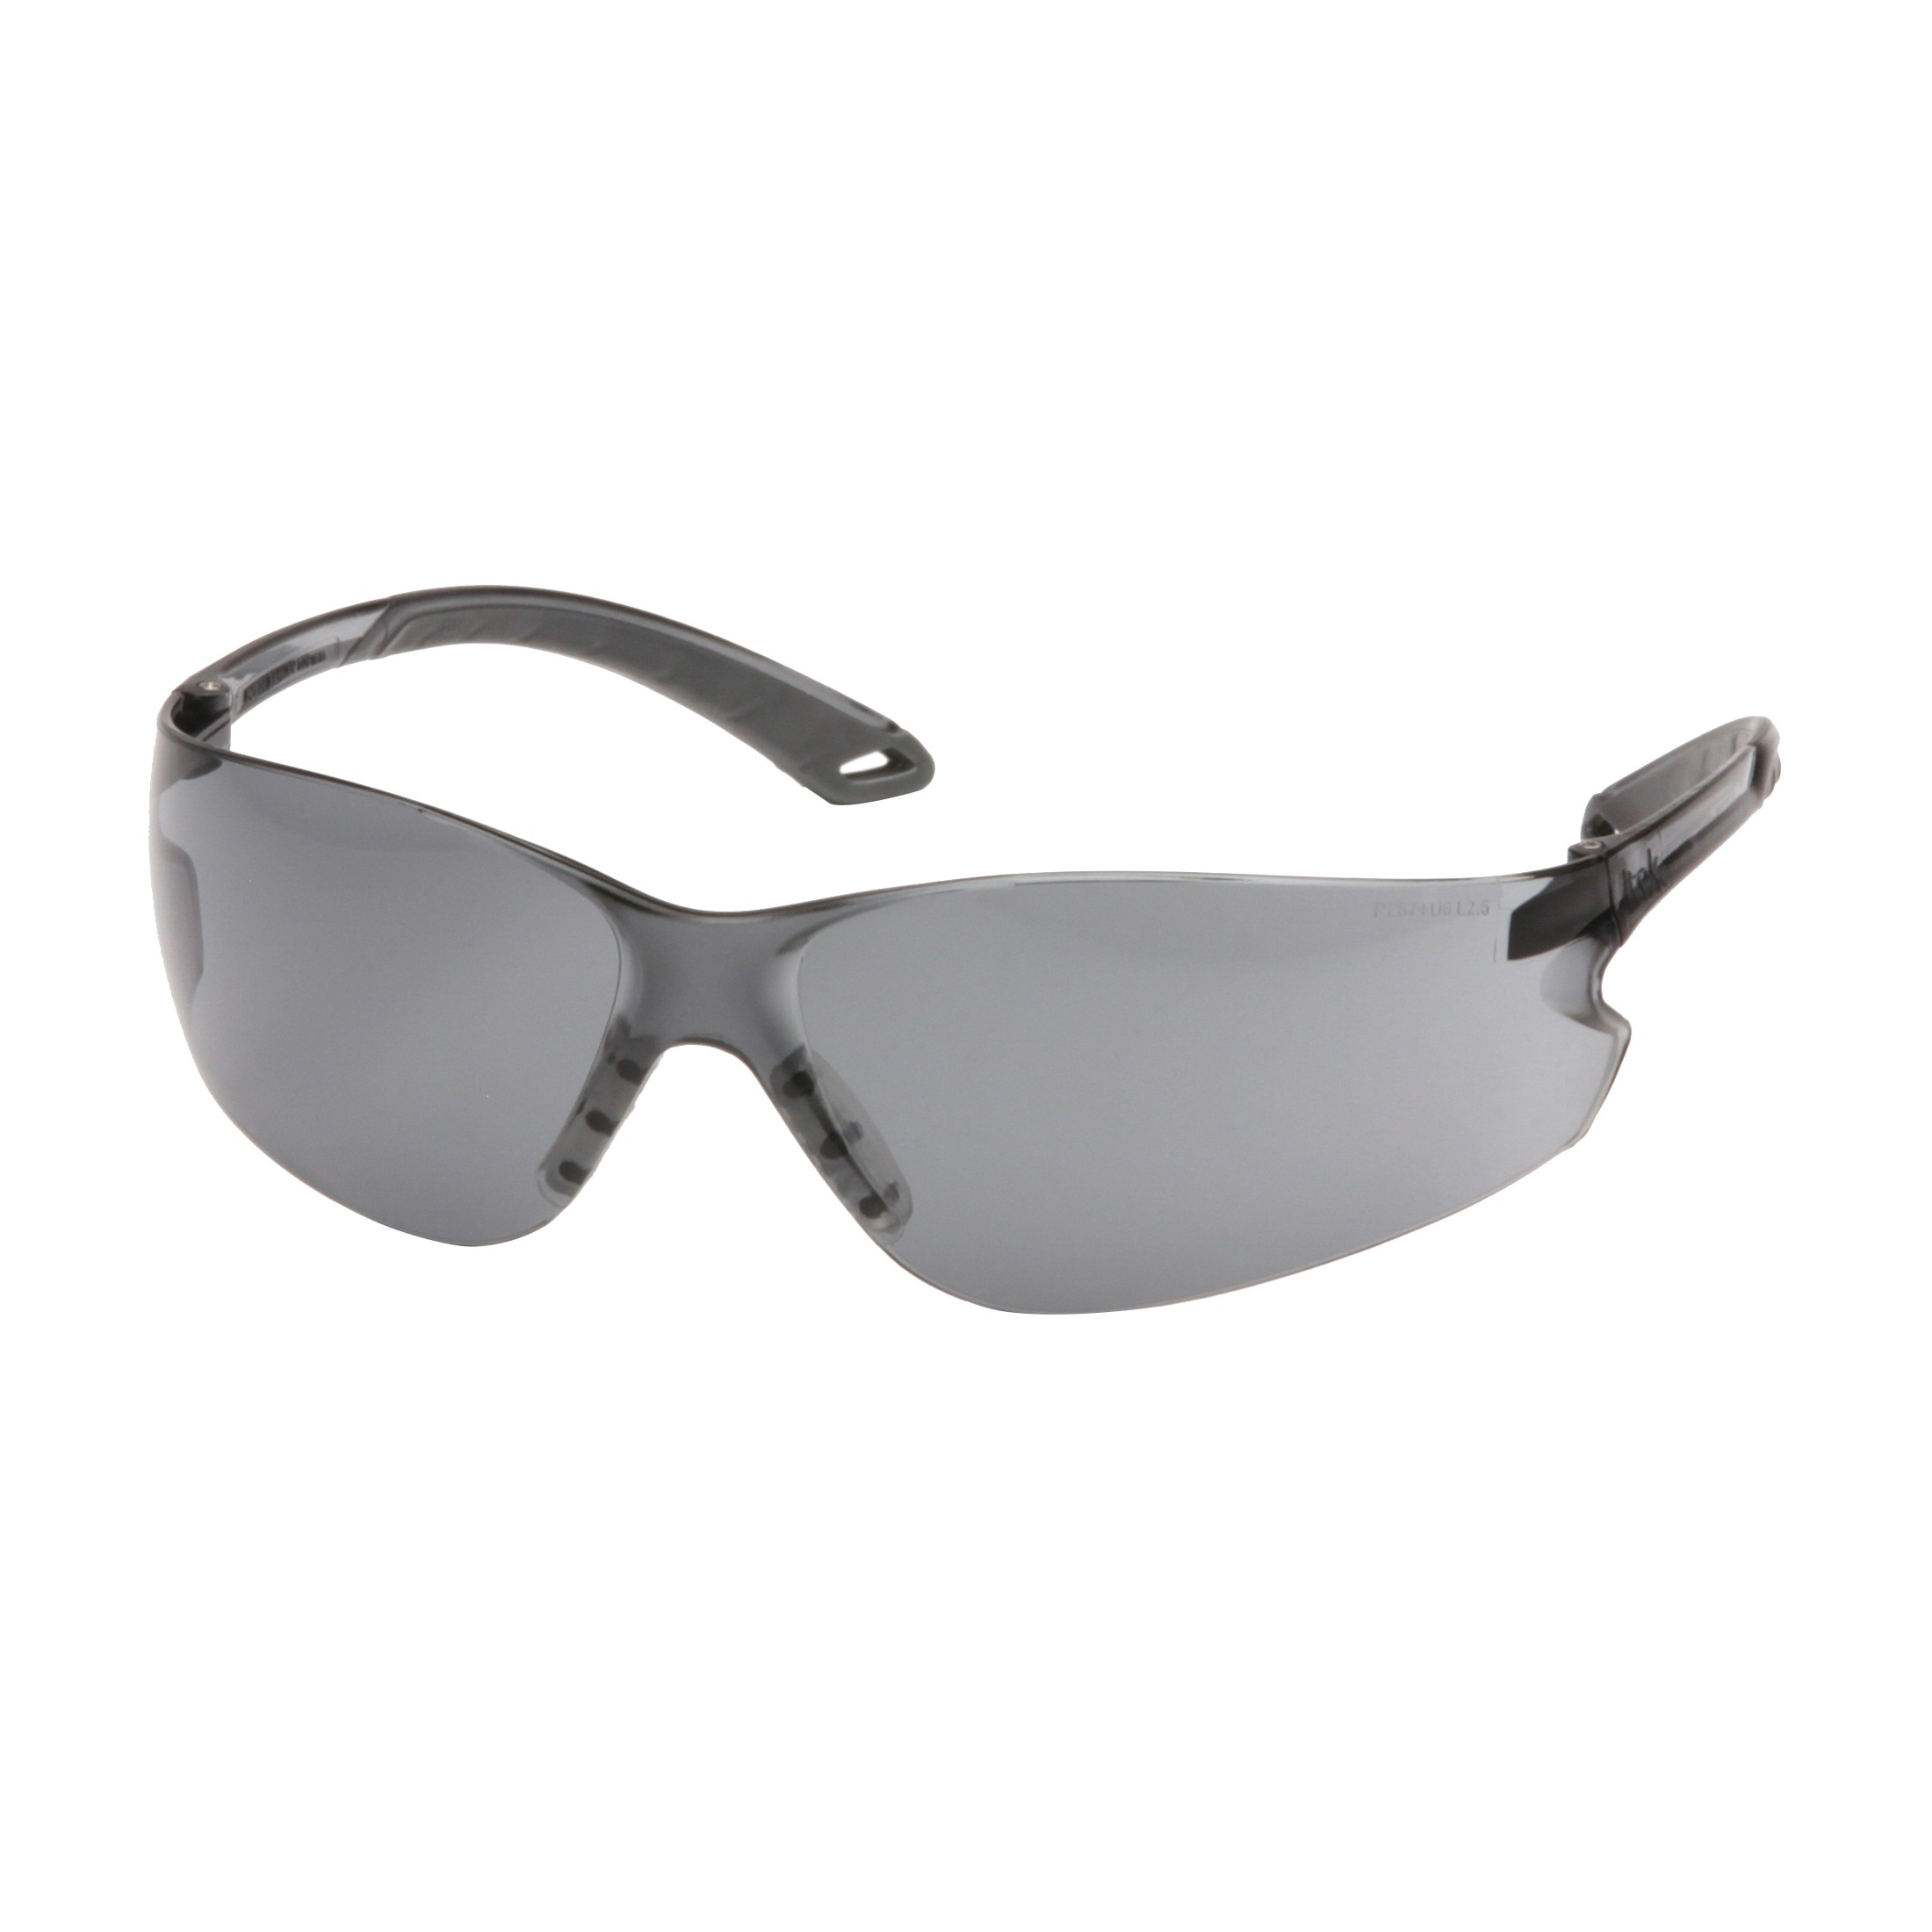 Pyramex® S5820S Light Weight Protective Glasses, Universal, Frameless, Scratch-Resistant Gray Lens